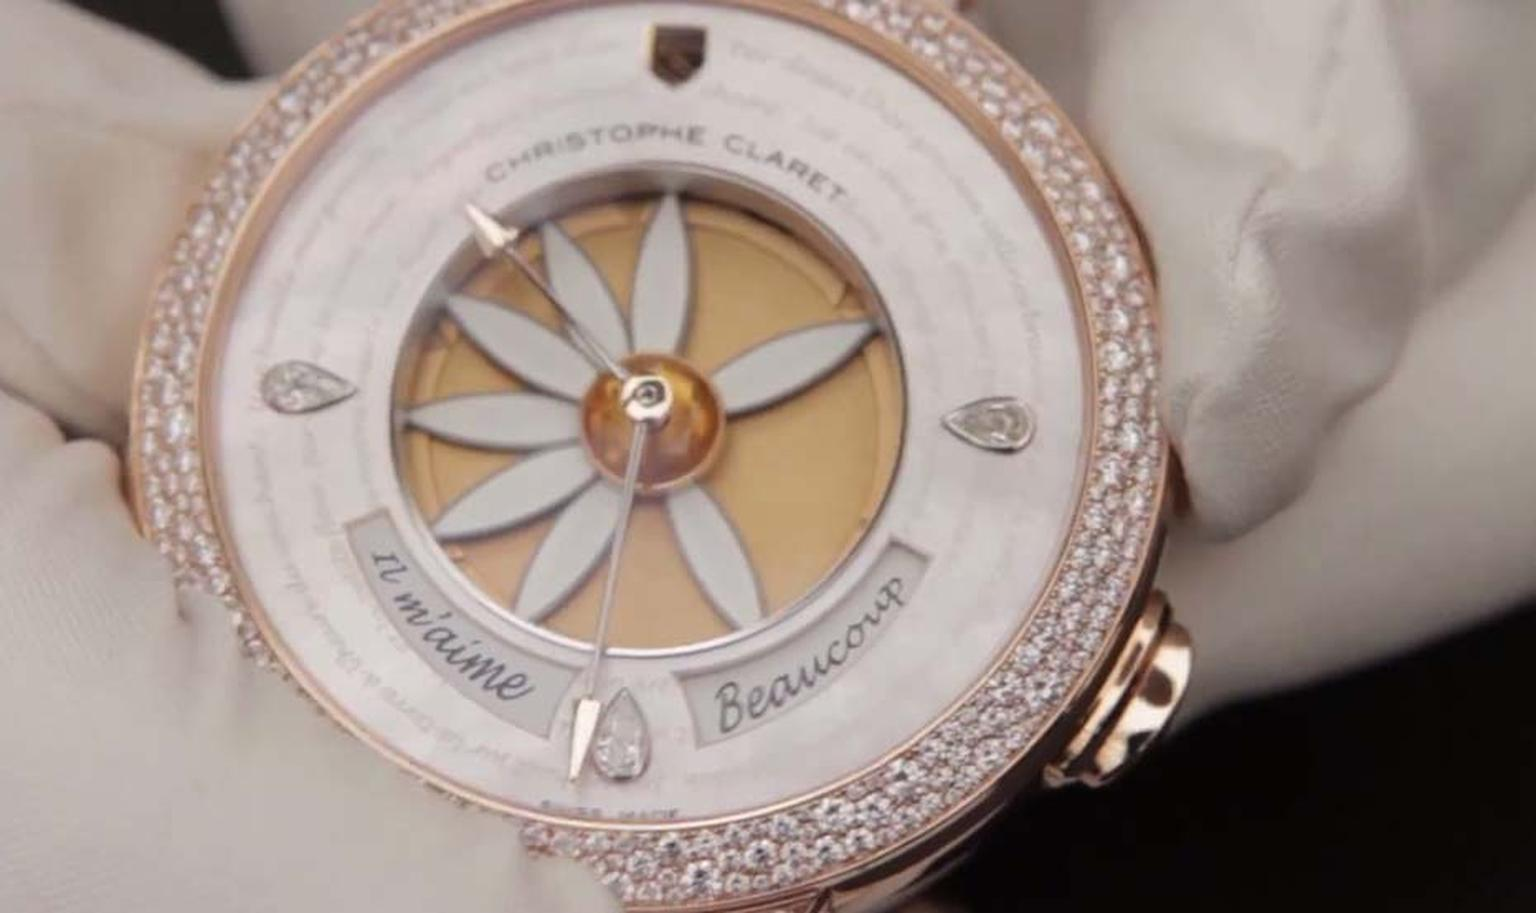 Christophe Claret Margot watch spells out whether he loves you, or loves you not, in petals